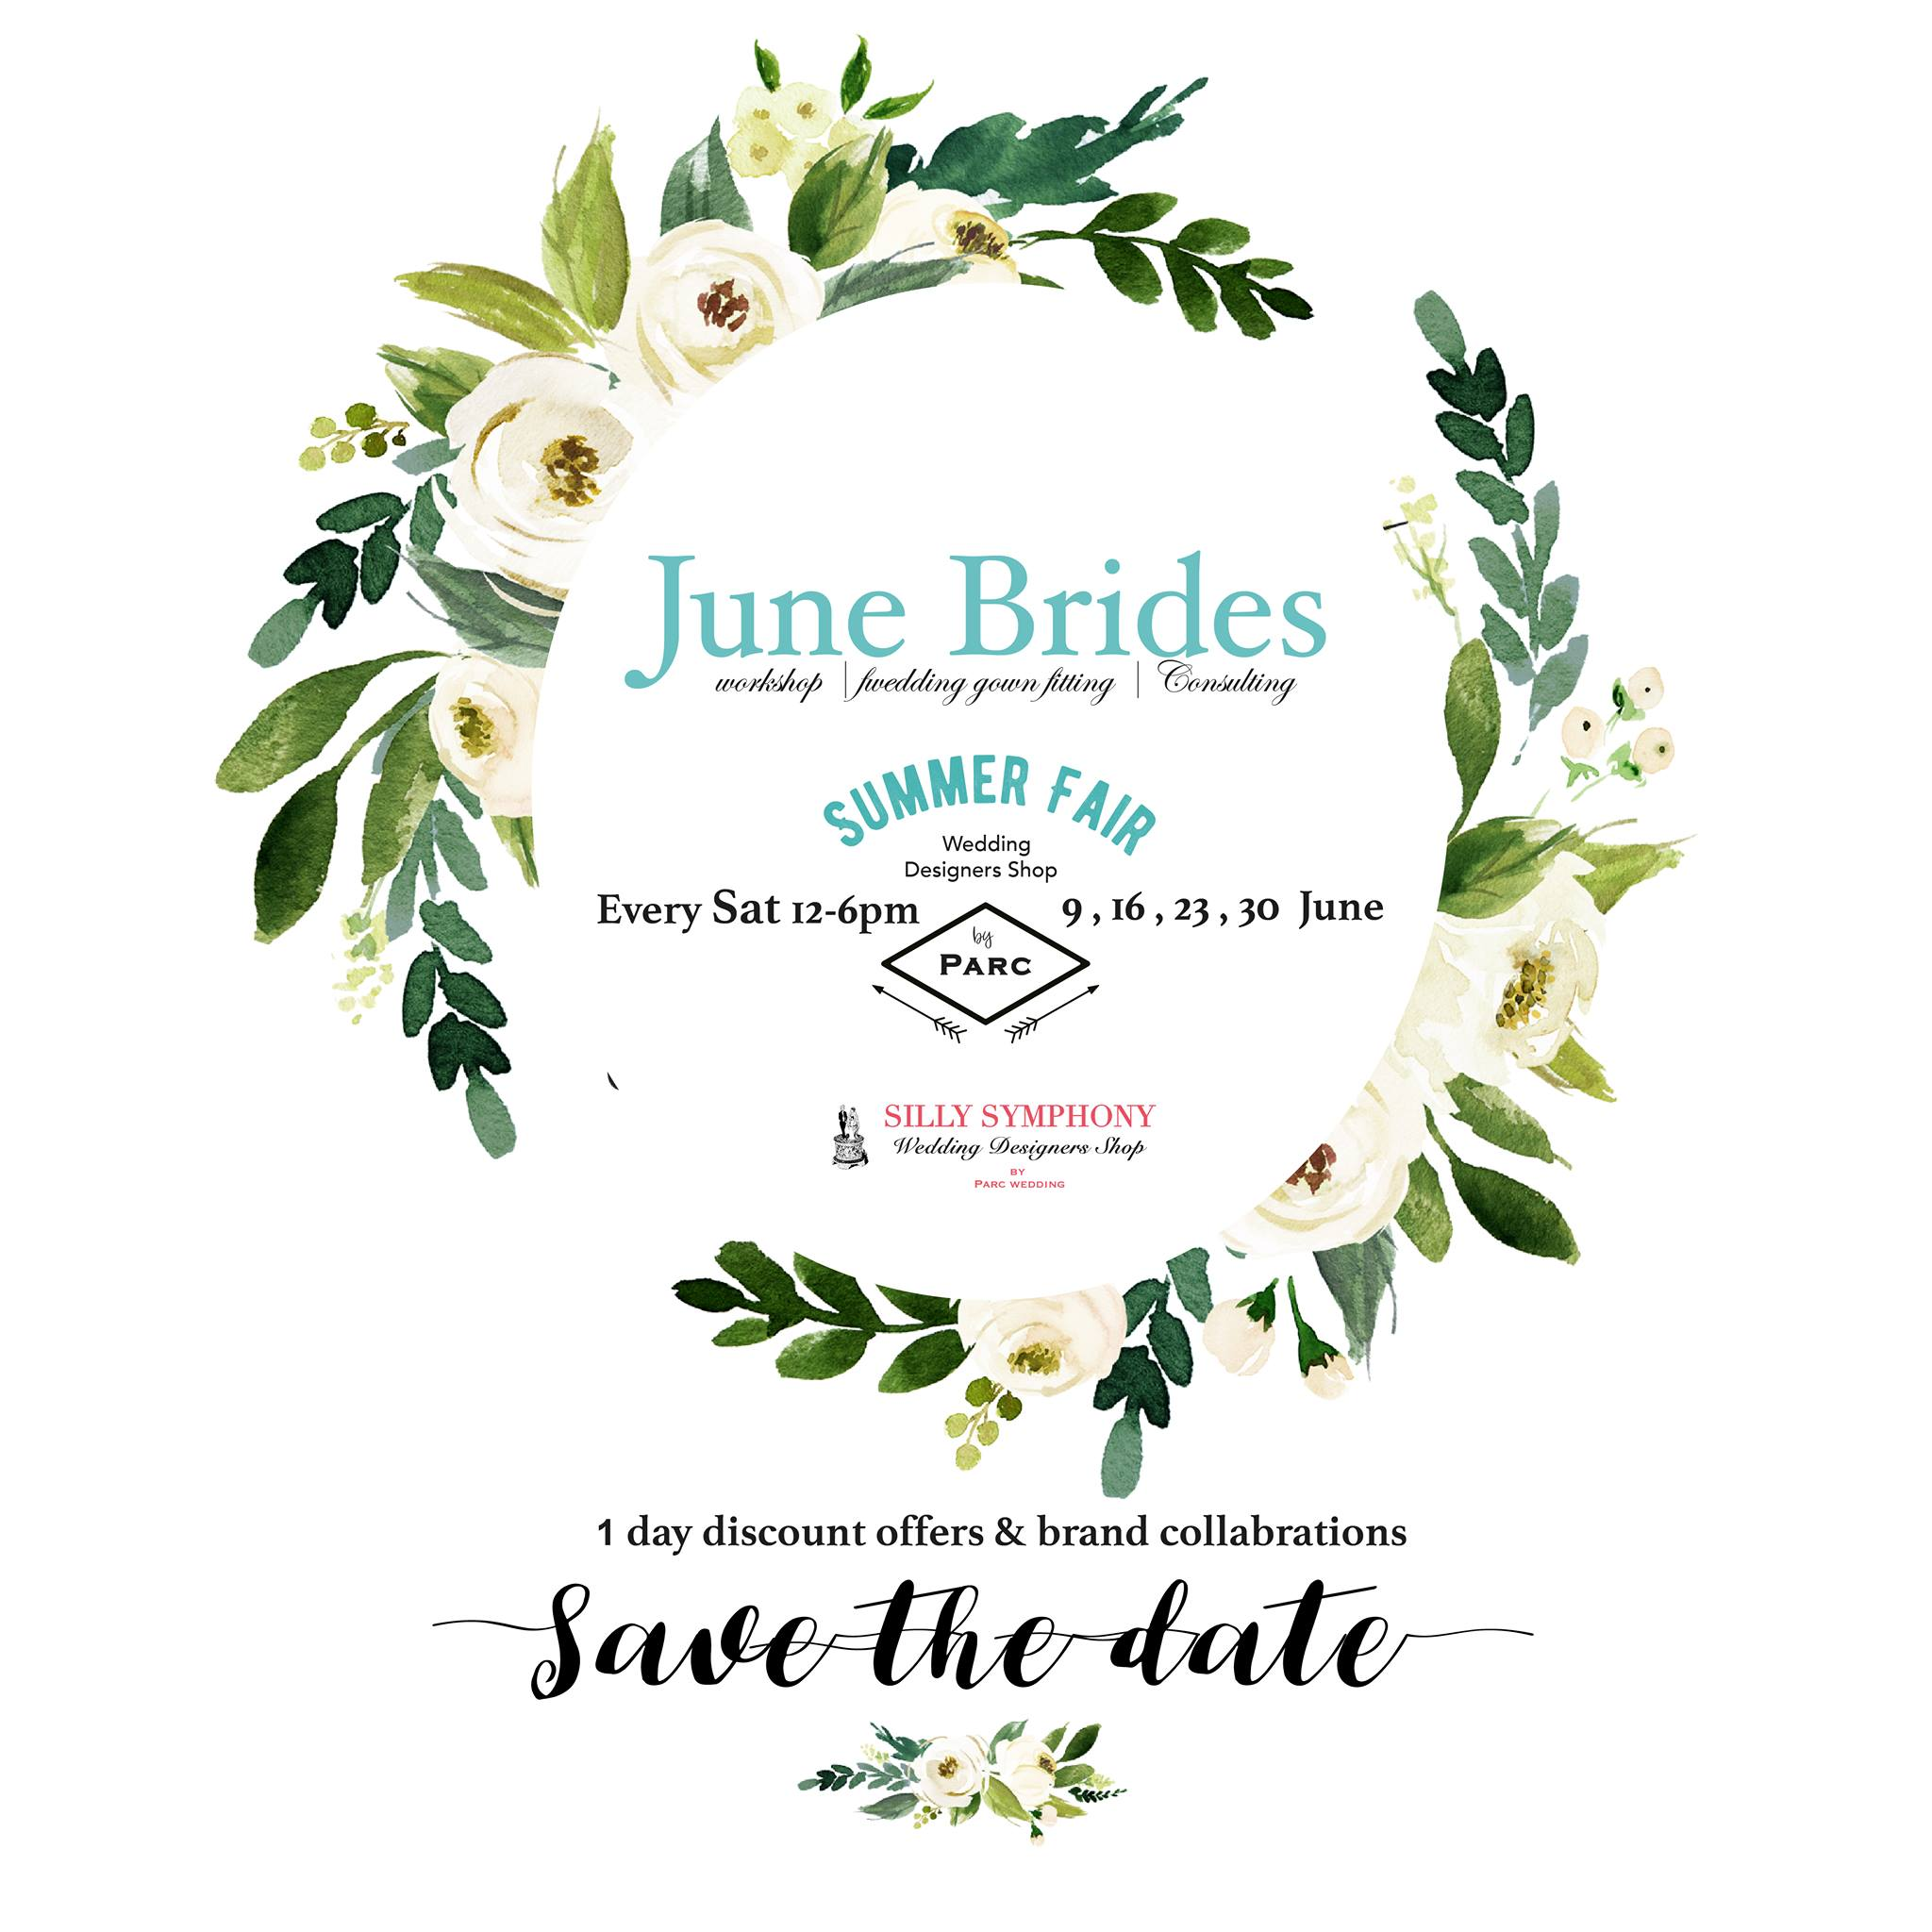 June Brides Summer Fair - Every Sat in June 2018 | wedding gown fitting . pre-wedding photo . accessories consulting . workshop| experts sharing ...etc.